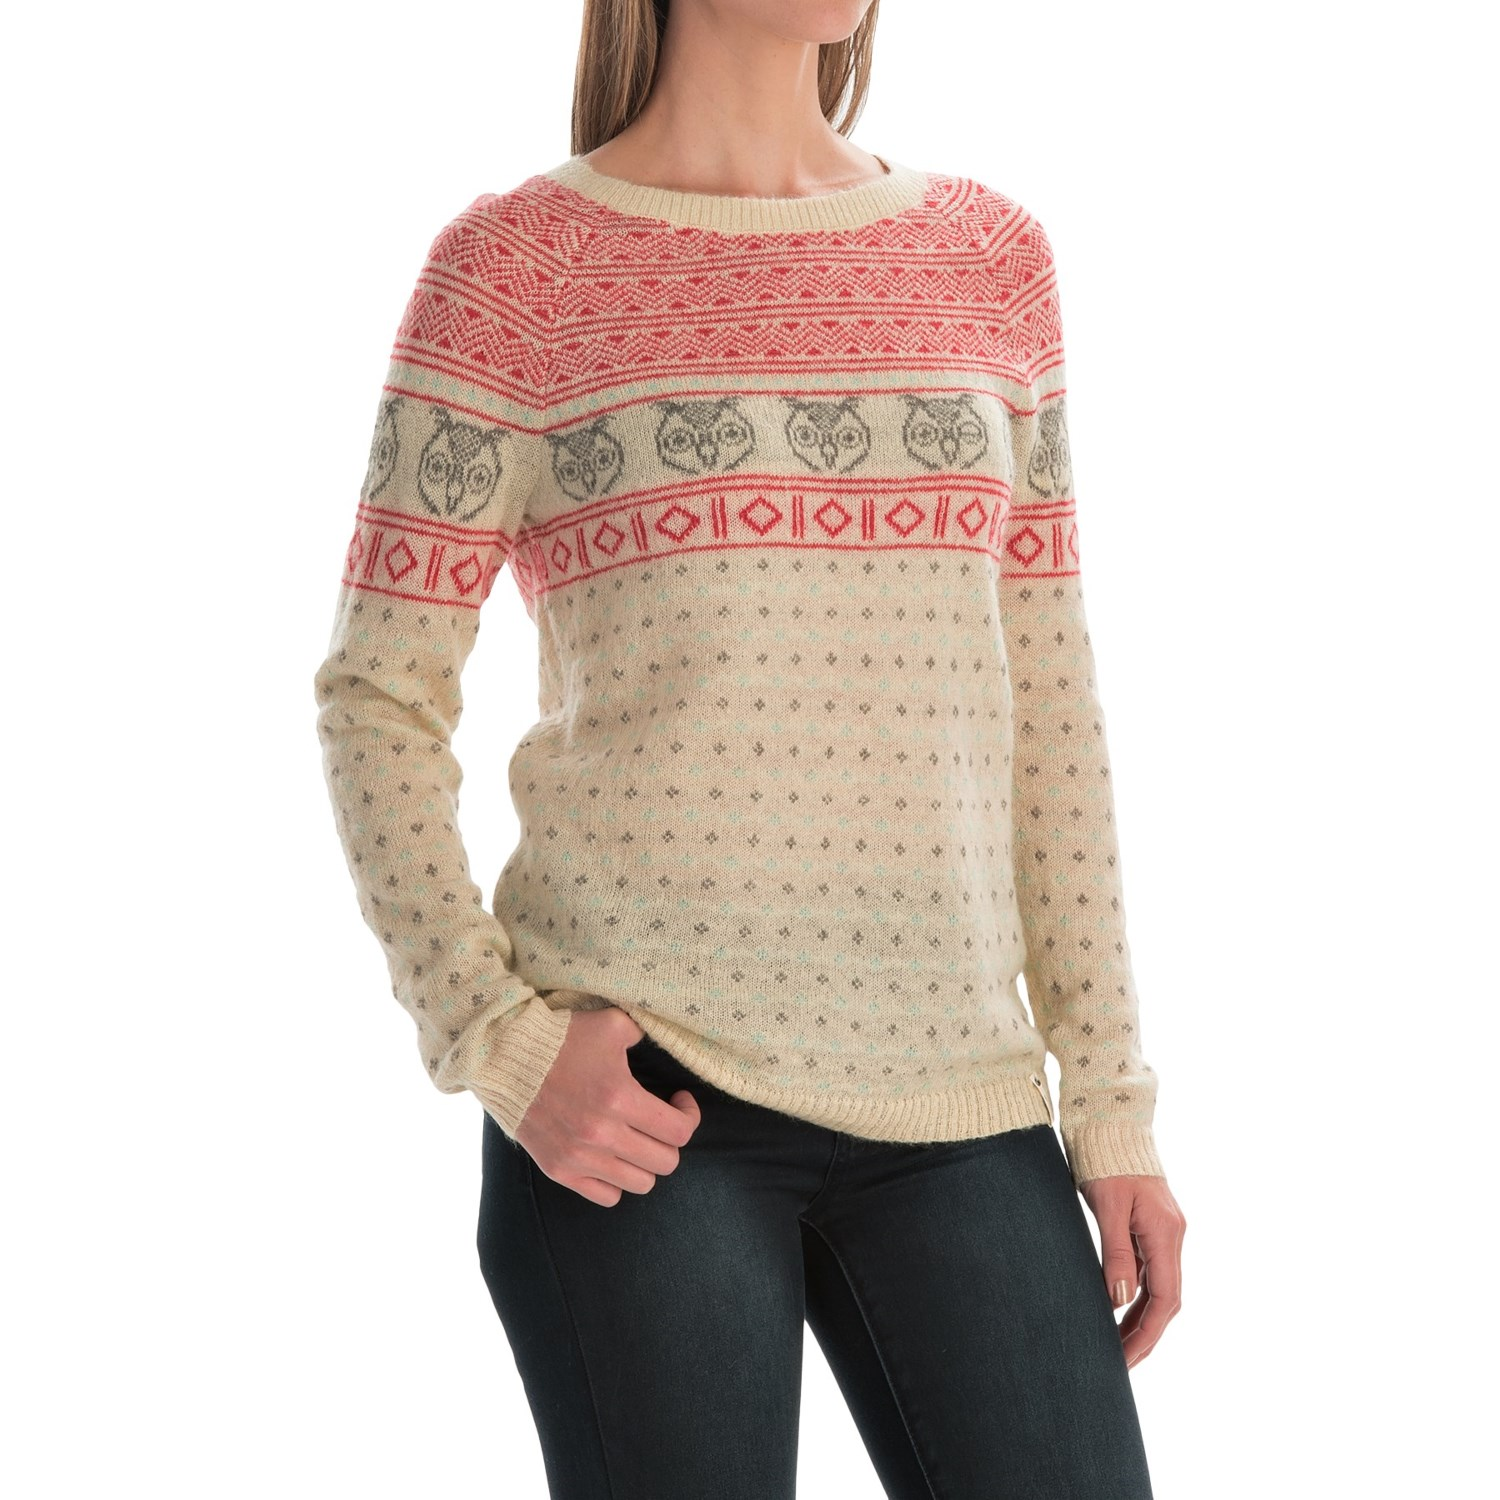 Fair Isle Sweater For Women - English Sweater Vest